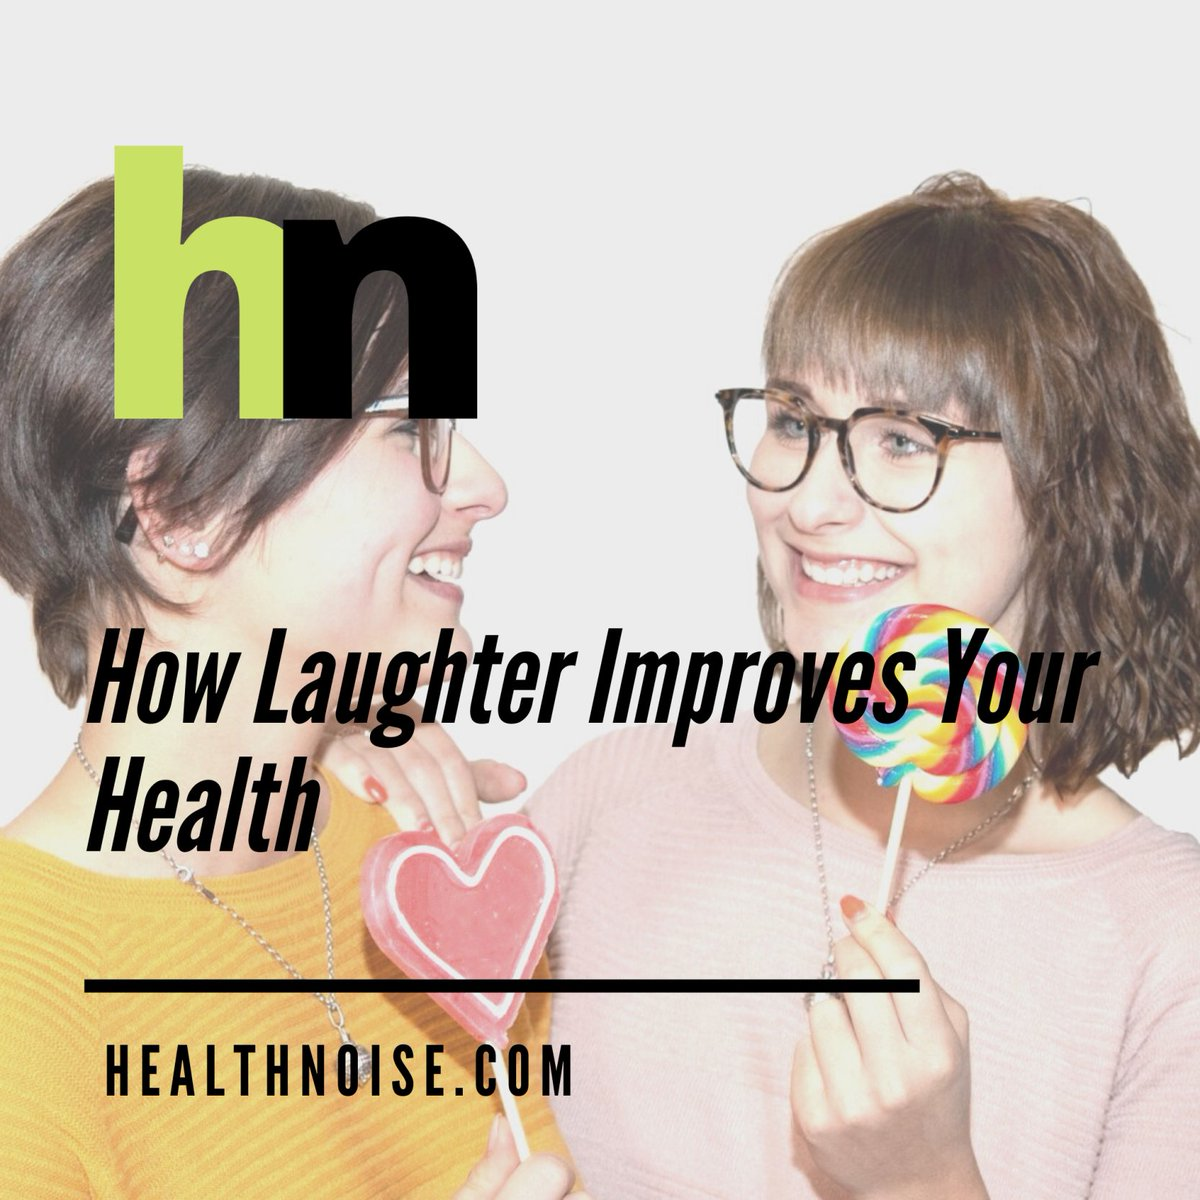 How Laughter Improves Your Health  Read more by visiting  #healthnoise #health #fitness #bodybuilding #fitnessgoals #bodygoals #blog #fitnessblog #nutrition #physicalhealth #stayhealthy